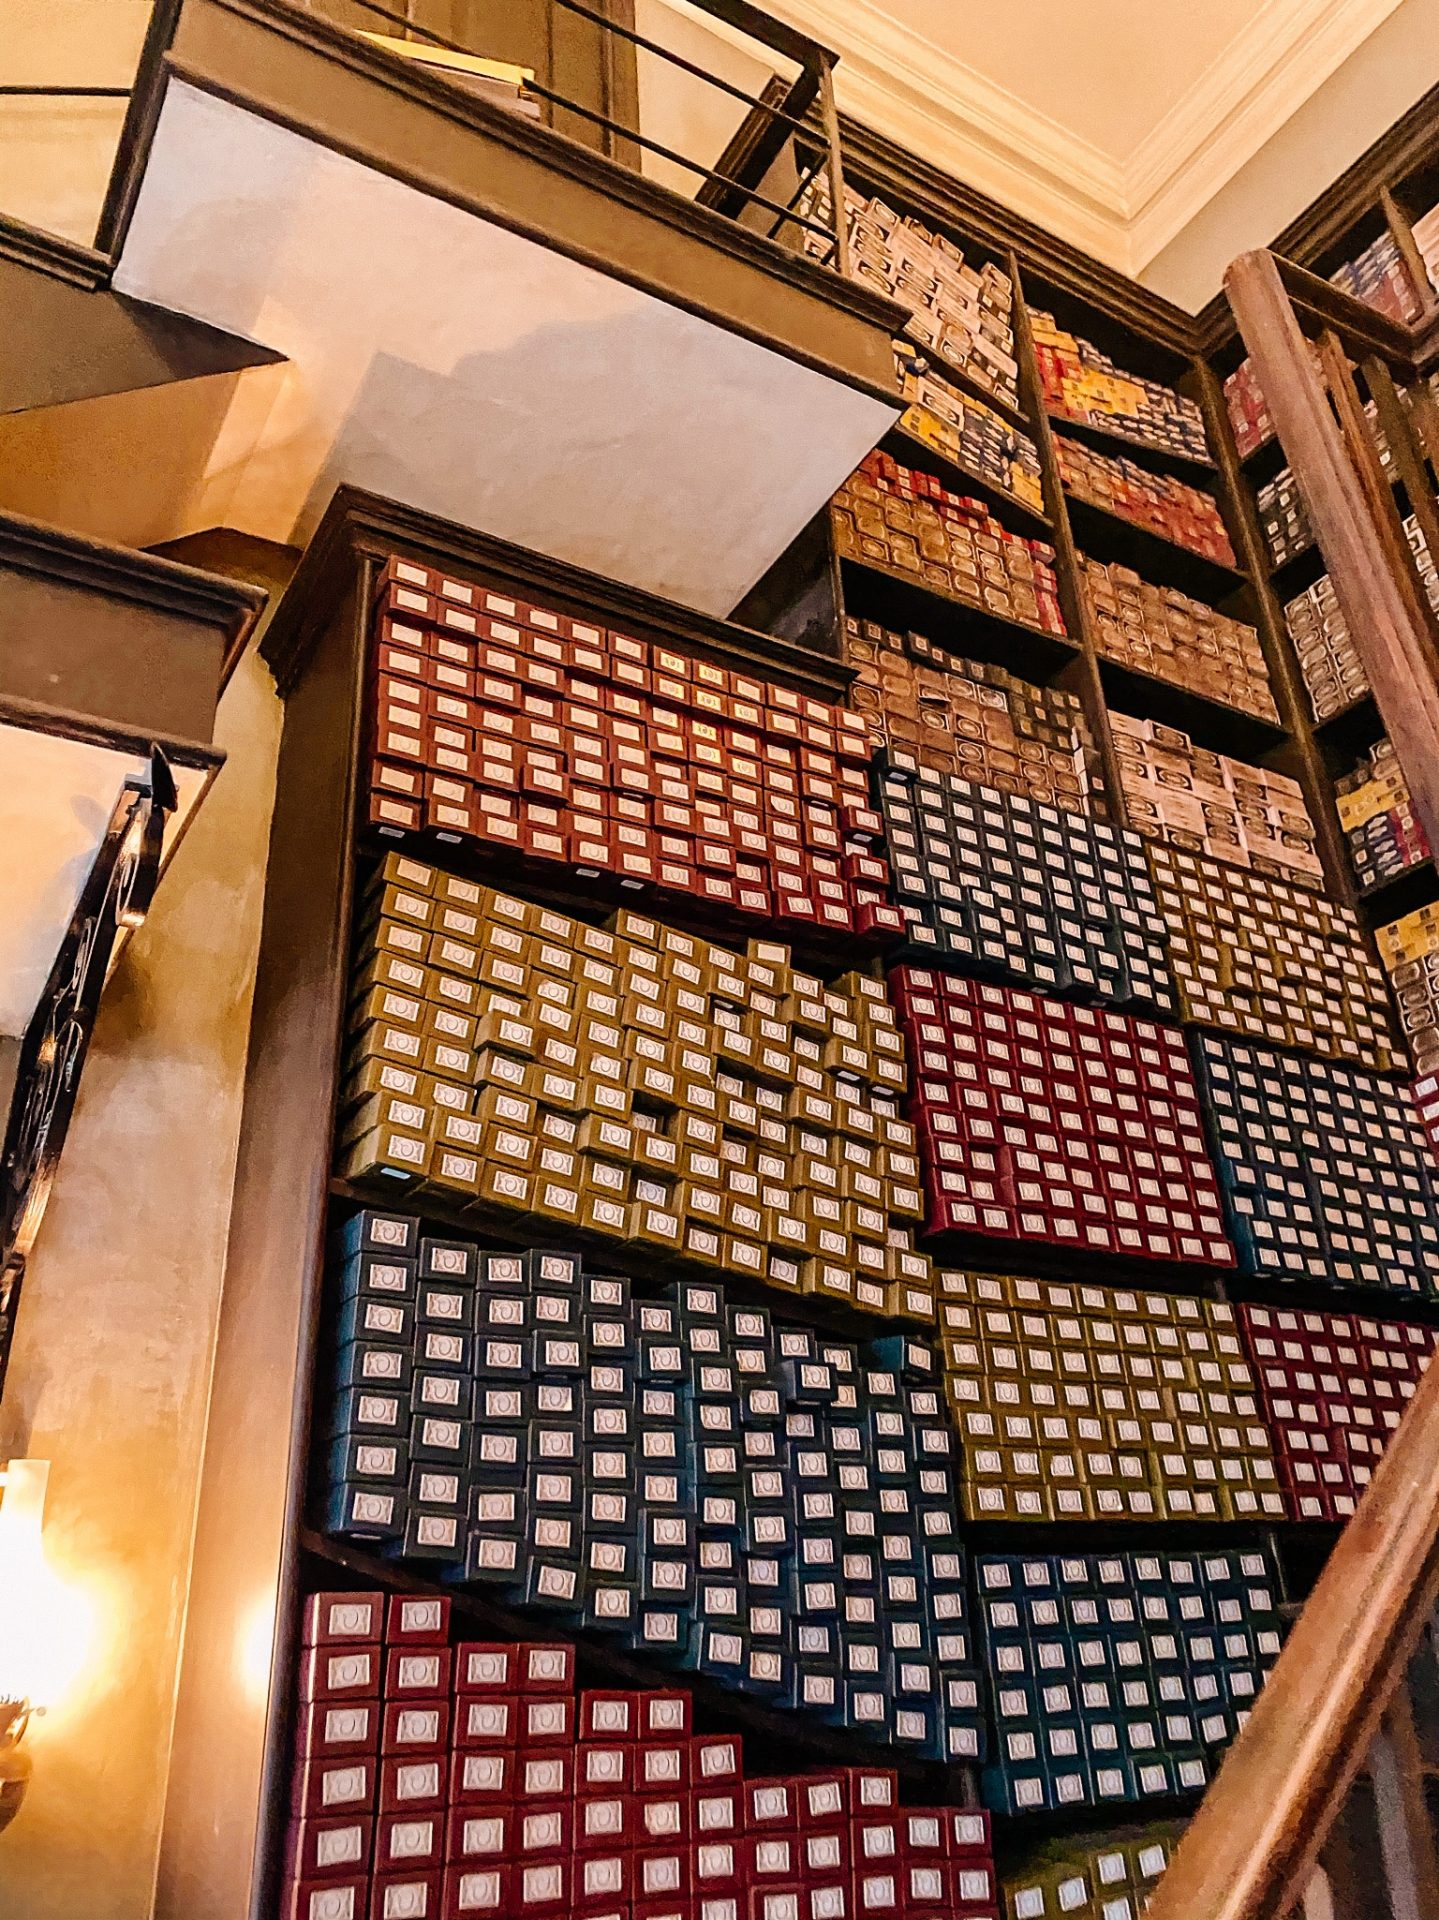 Ollivanders wand shop at the Wizarding World of Harry Potter at Universal Orlando Studios Florida shelves up to the ceiling of wands.